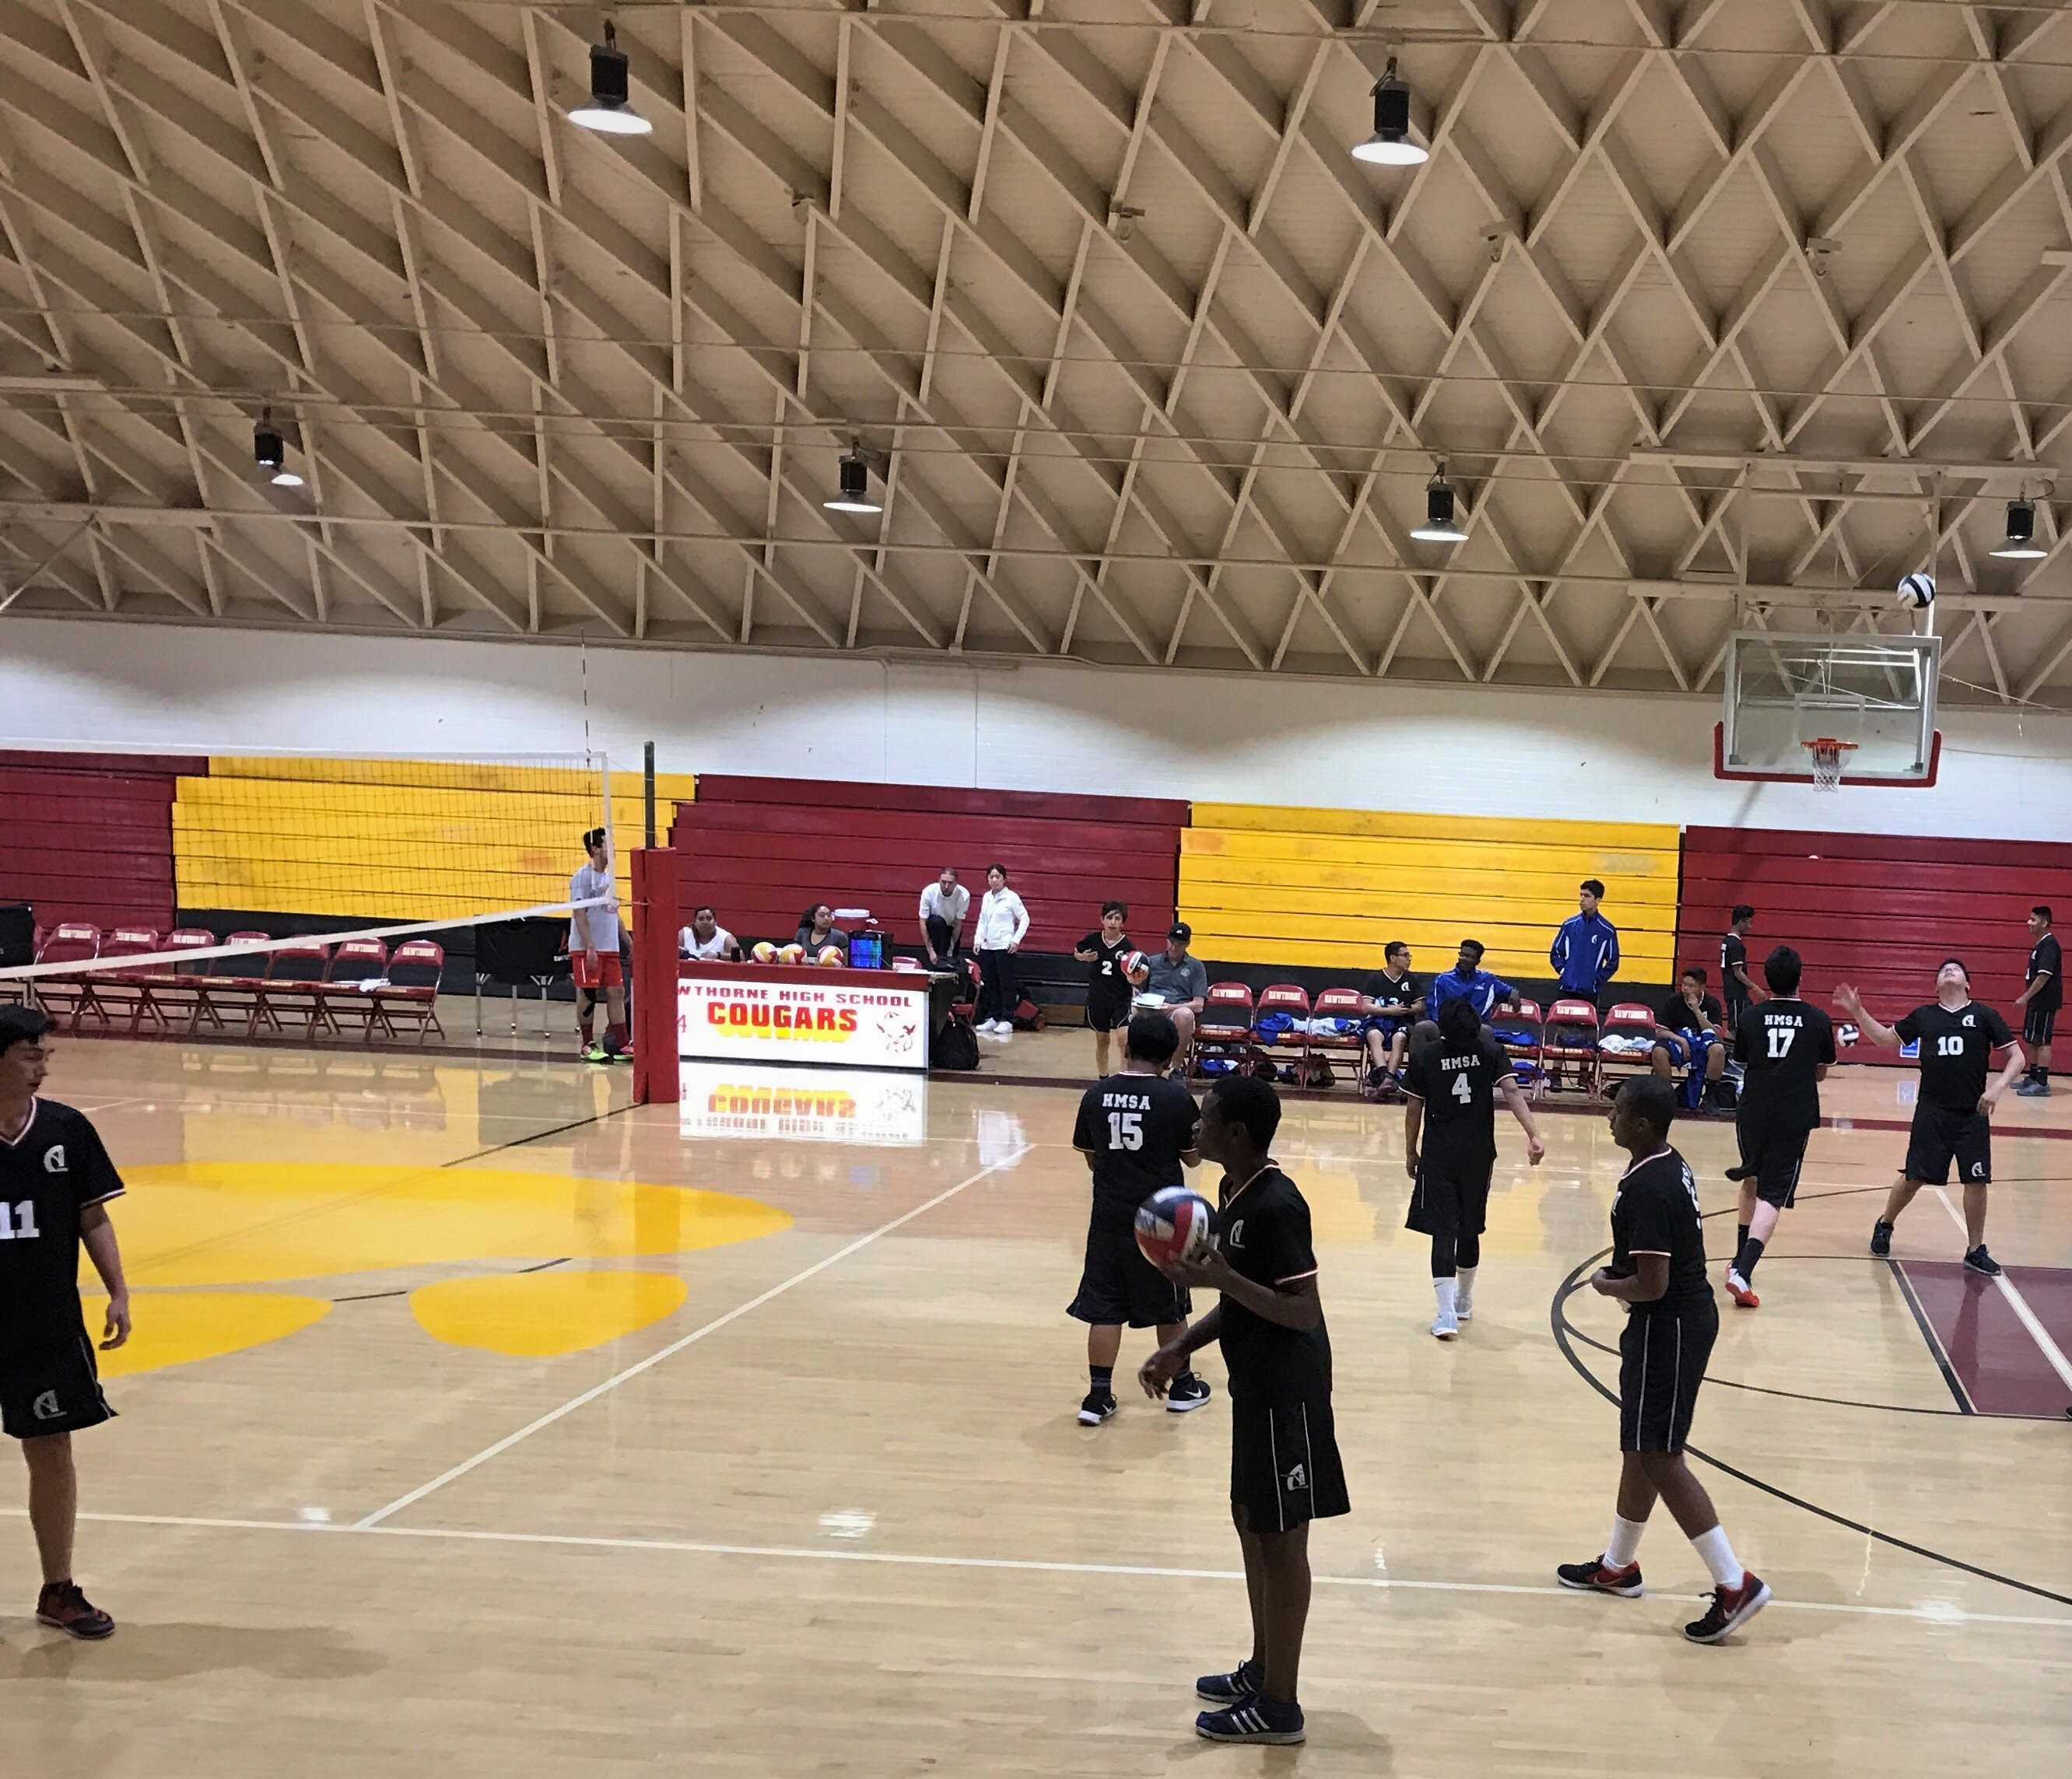 The Boys Volleyball Team warming up before their game against Hawthorne High.